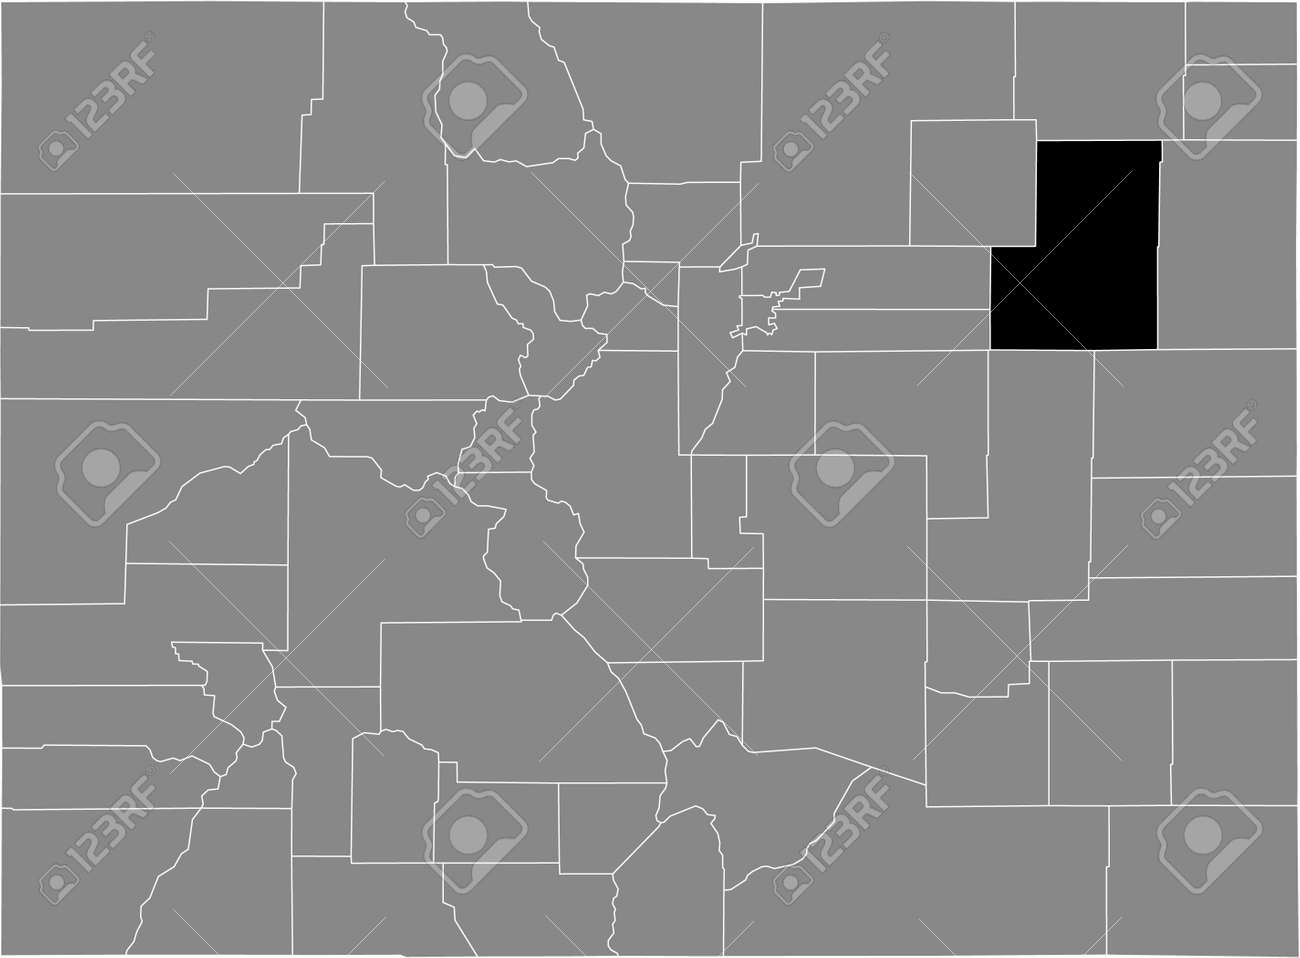 Black highlighted location map of the US Washington county inside gray map of the Federal State of Colorado, USA - 169912547